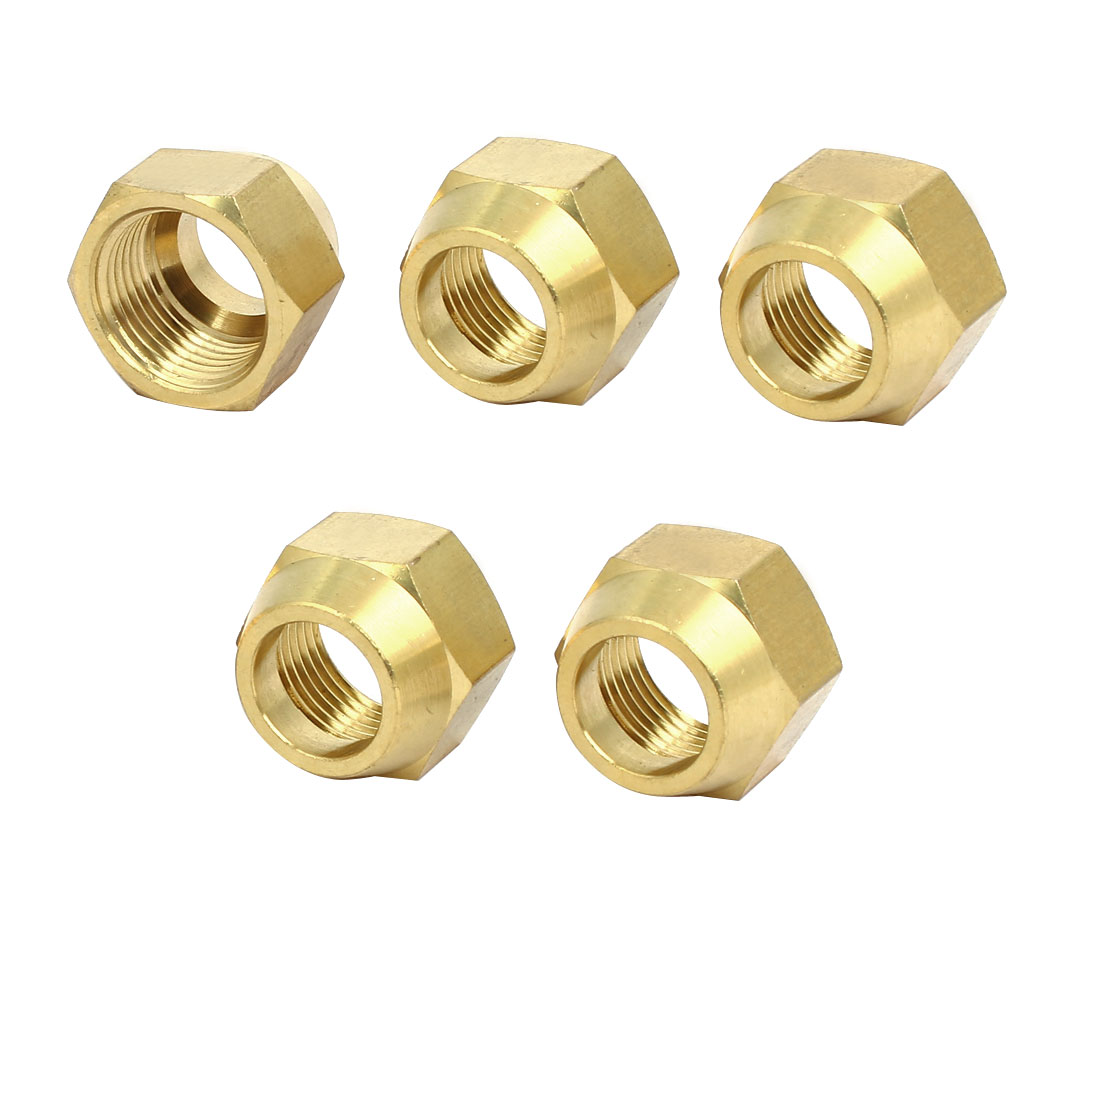 5/8BSP Brass Flare Nuts Air Conditioner Parts Fittings 5pcs for 16mm Dia Pipe